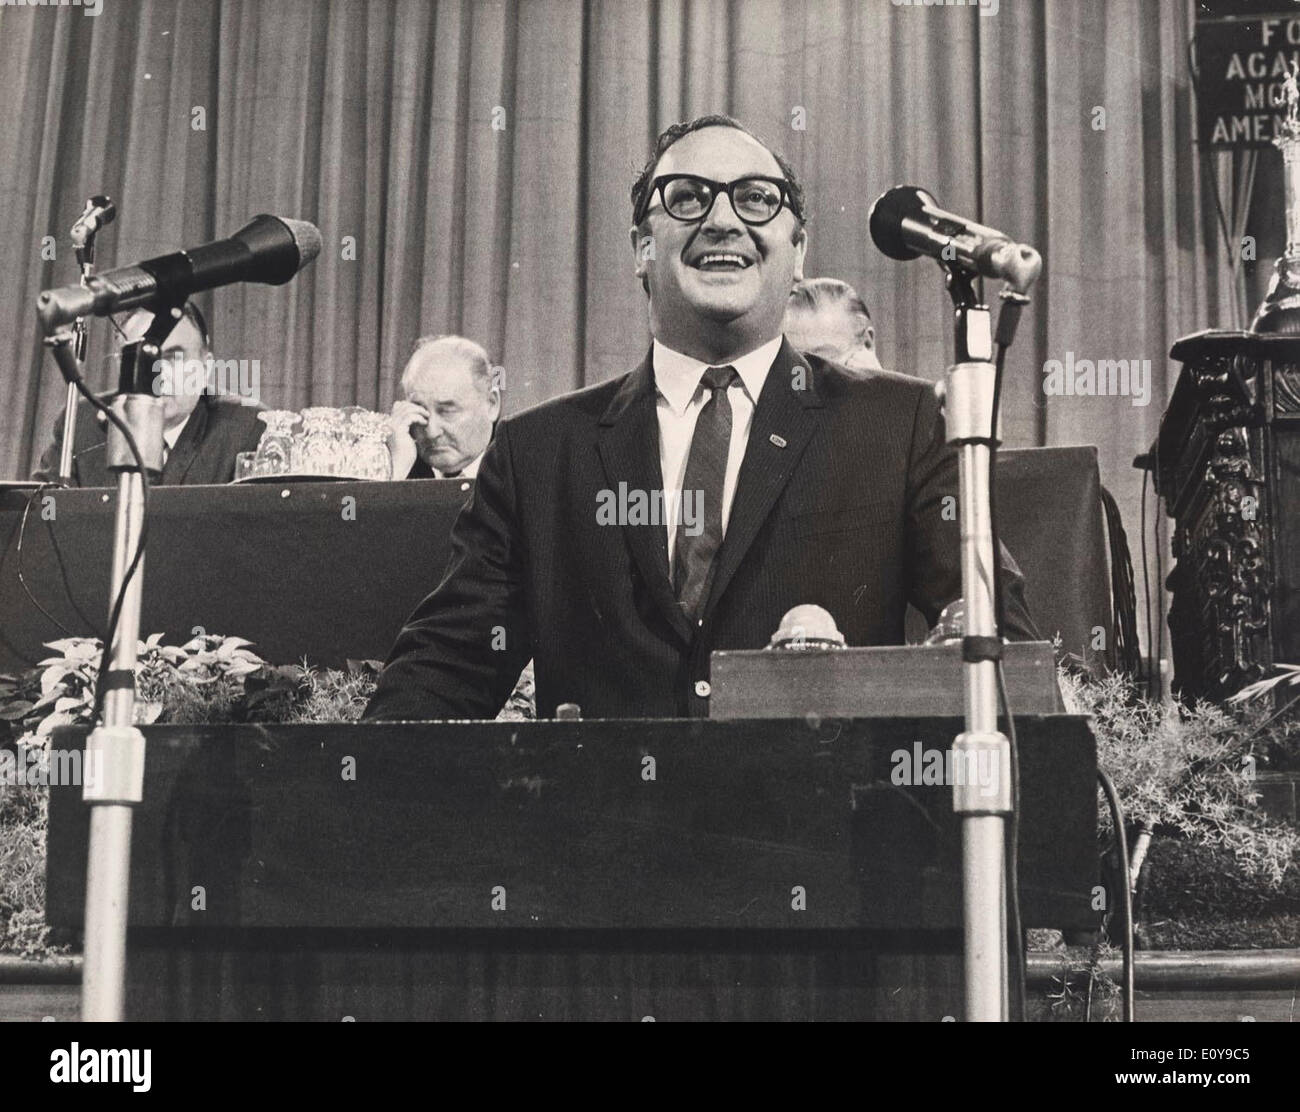 Sep 05, 1969 - Portsmouth, England, United Kingdom - CLIVE JENKINS, joint general secretary of the Association of Scientific, Technical and Managerial Staffs, speaks at the Trades Union Congress. - Stock Image